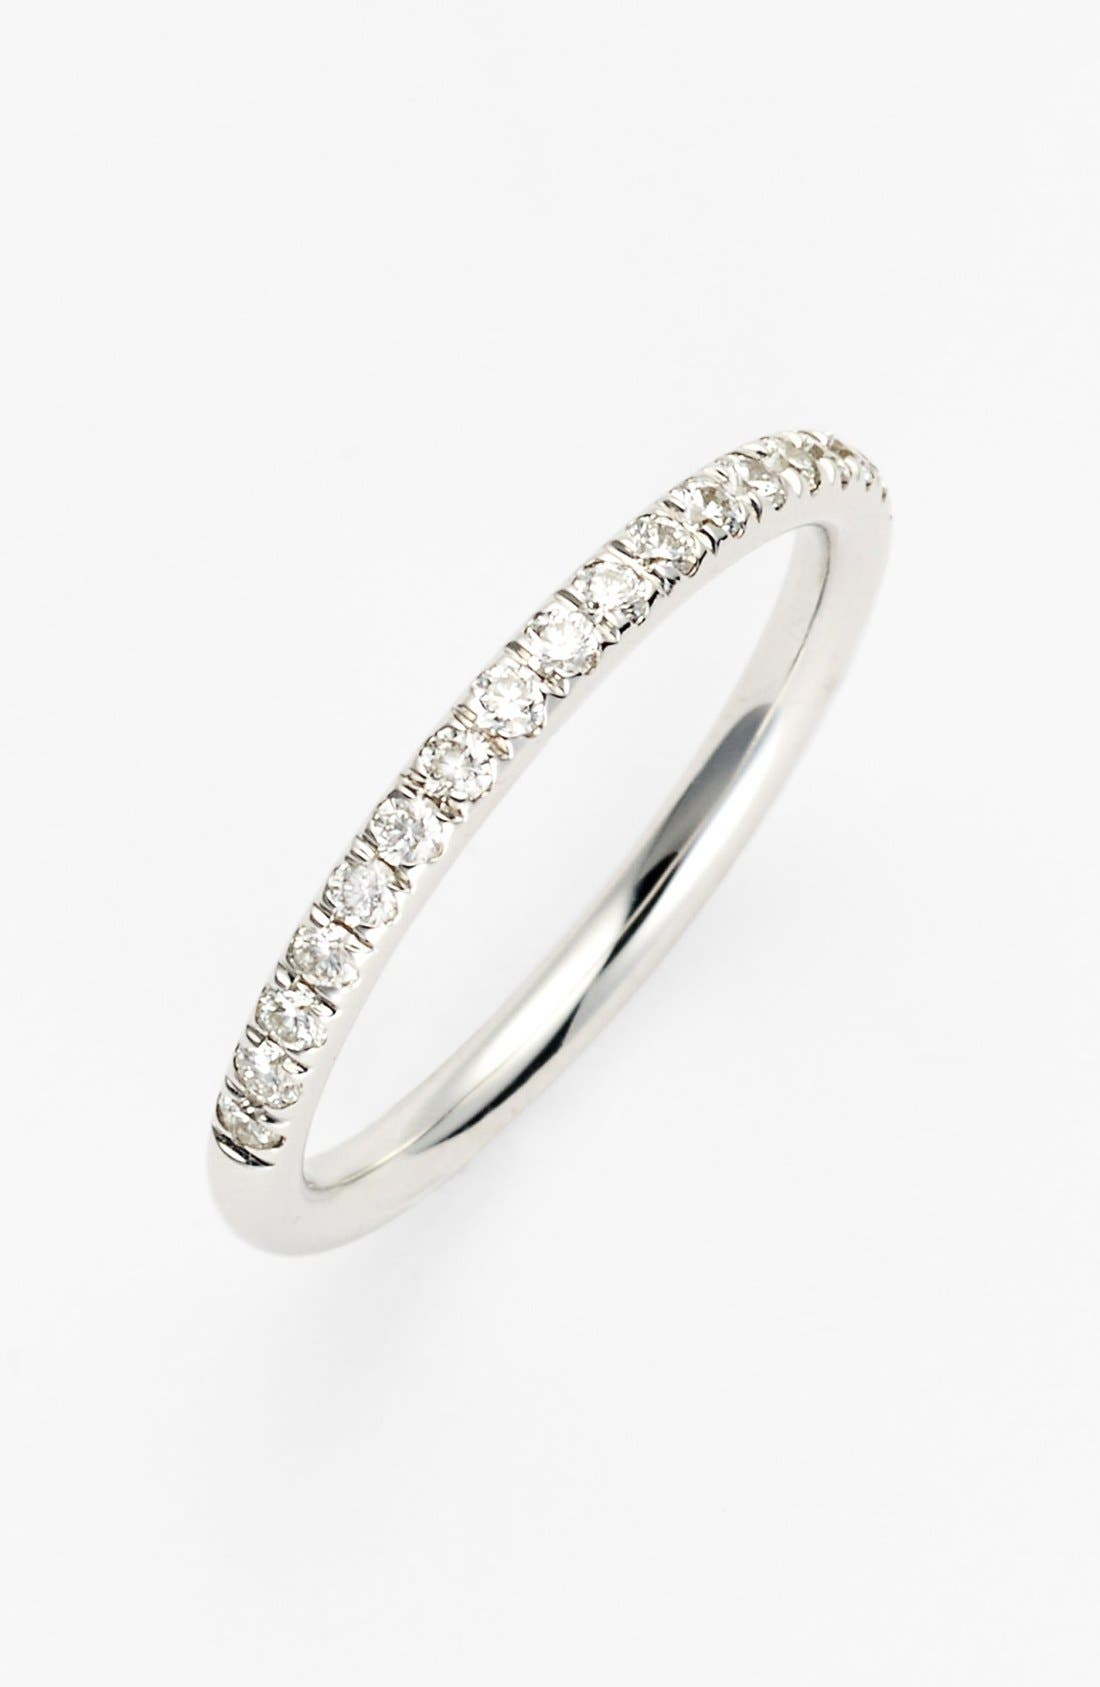 BONY LEVY 'Stackable' Large Straight Diamond Band Ring